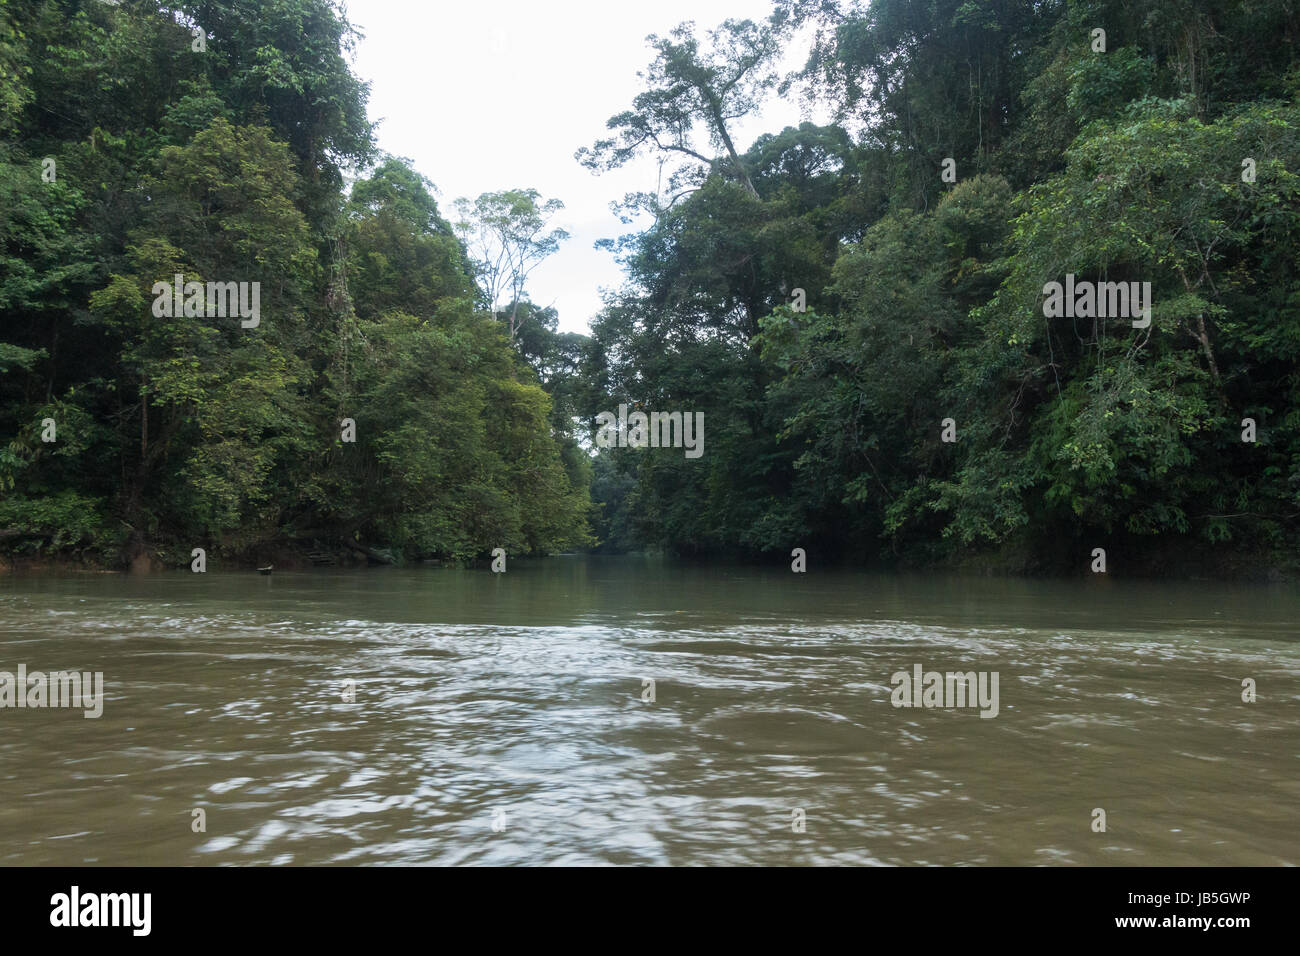 A jungle river flows through lush tropical rianforest in Ulu Temburong National Park in Brunei - Stock Image